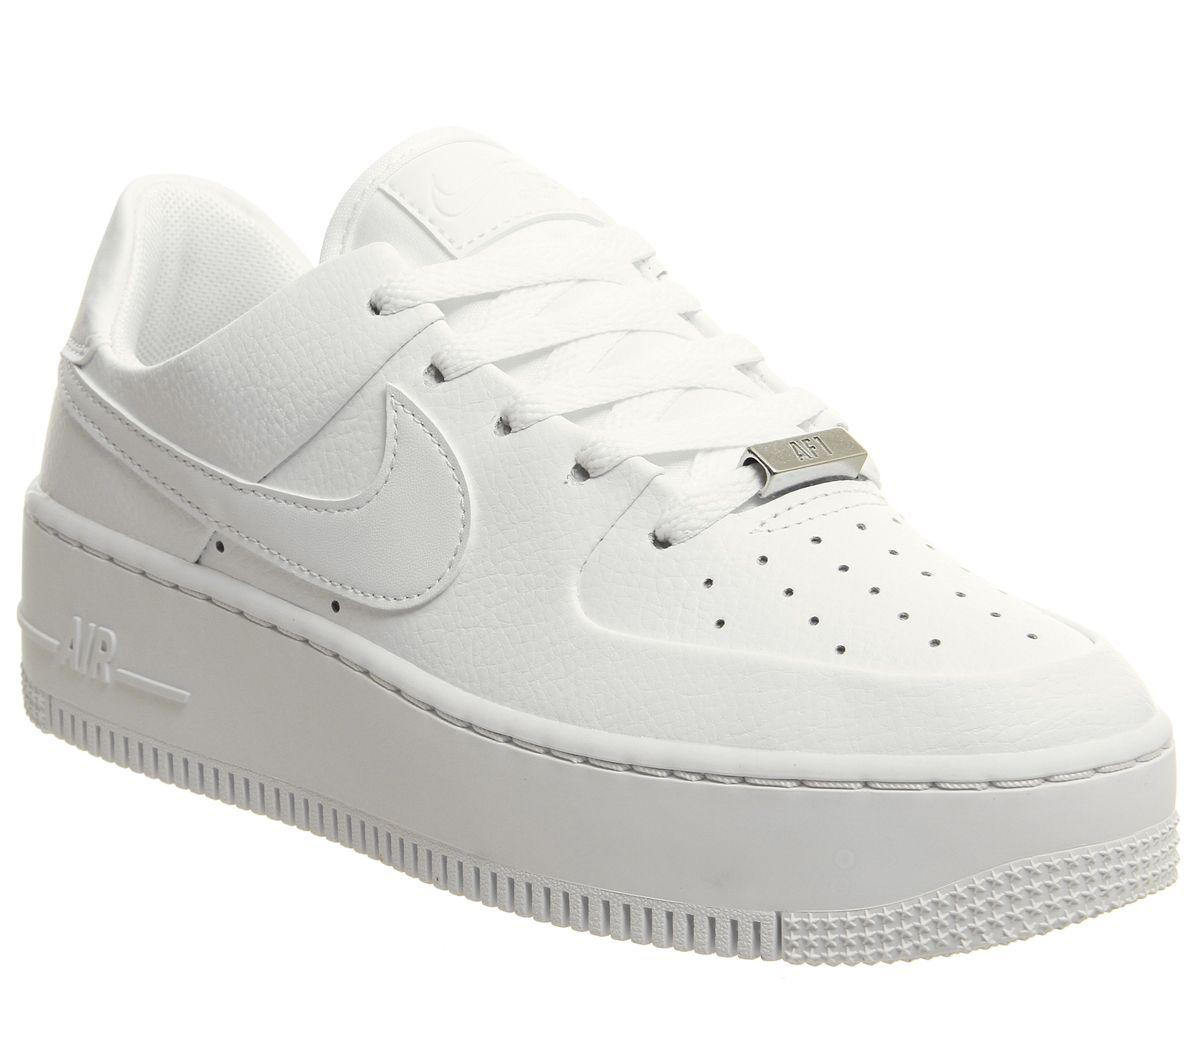 ae960817690f Nike Air Force 1 Sage Trainers in White - Save 23% - Lyst